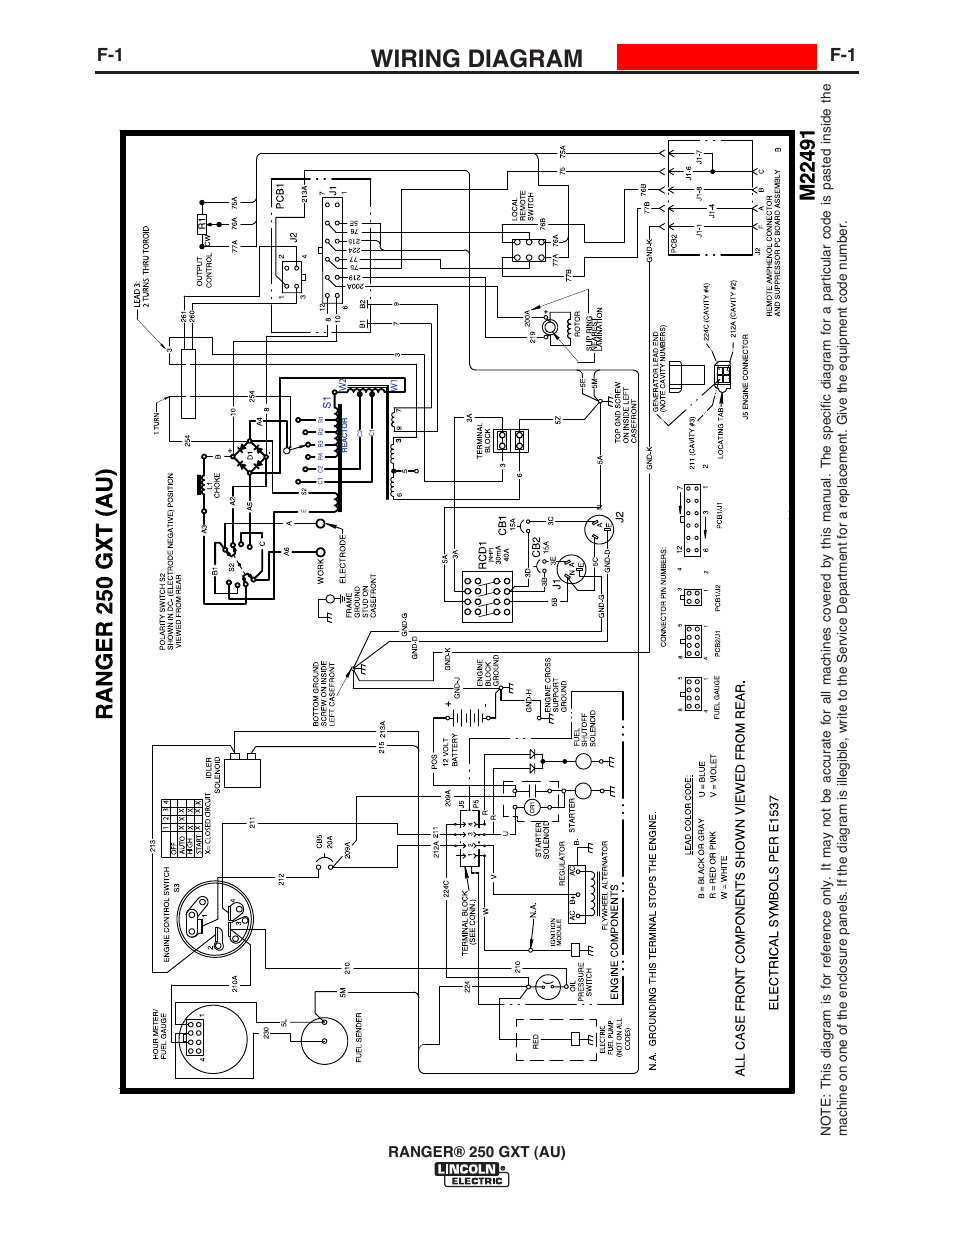 Lincoln Ranger 405d Wiring Diagram Worksheet And 2001 Navigator Engine Start Building A U2022 Rh Greenlightlocks Co Uk 2000 Schematic 1999